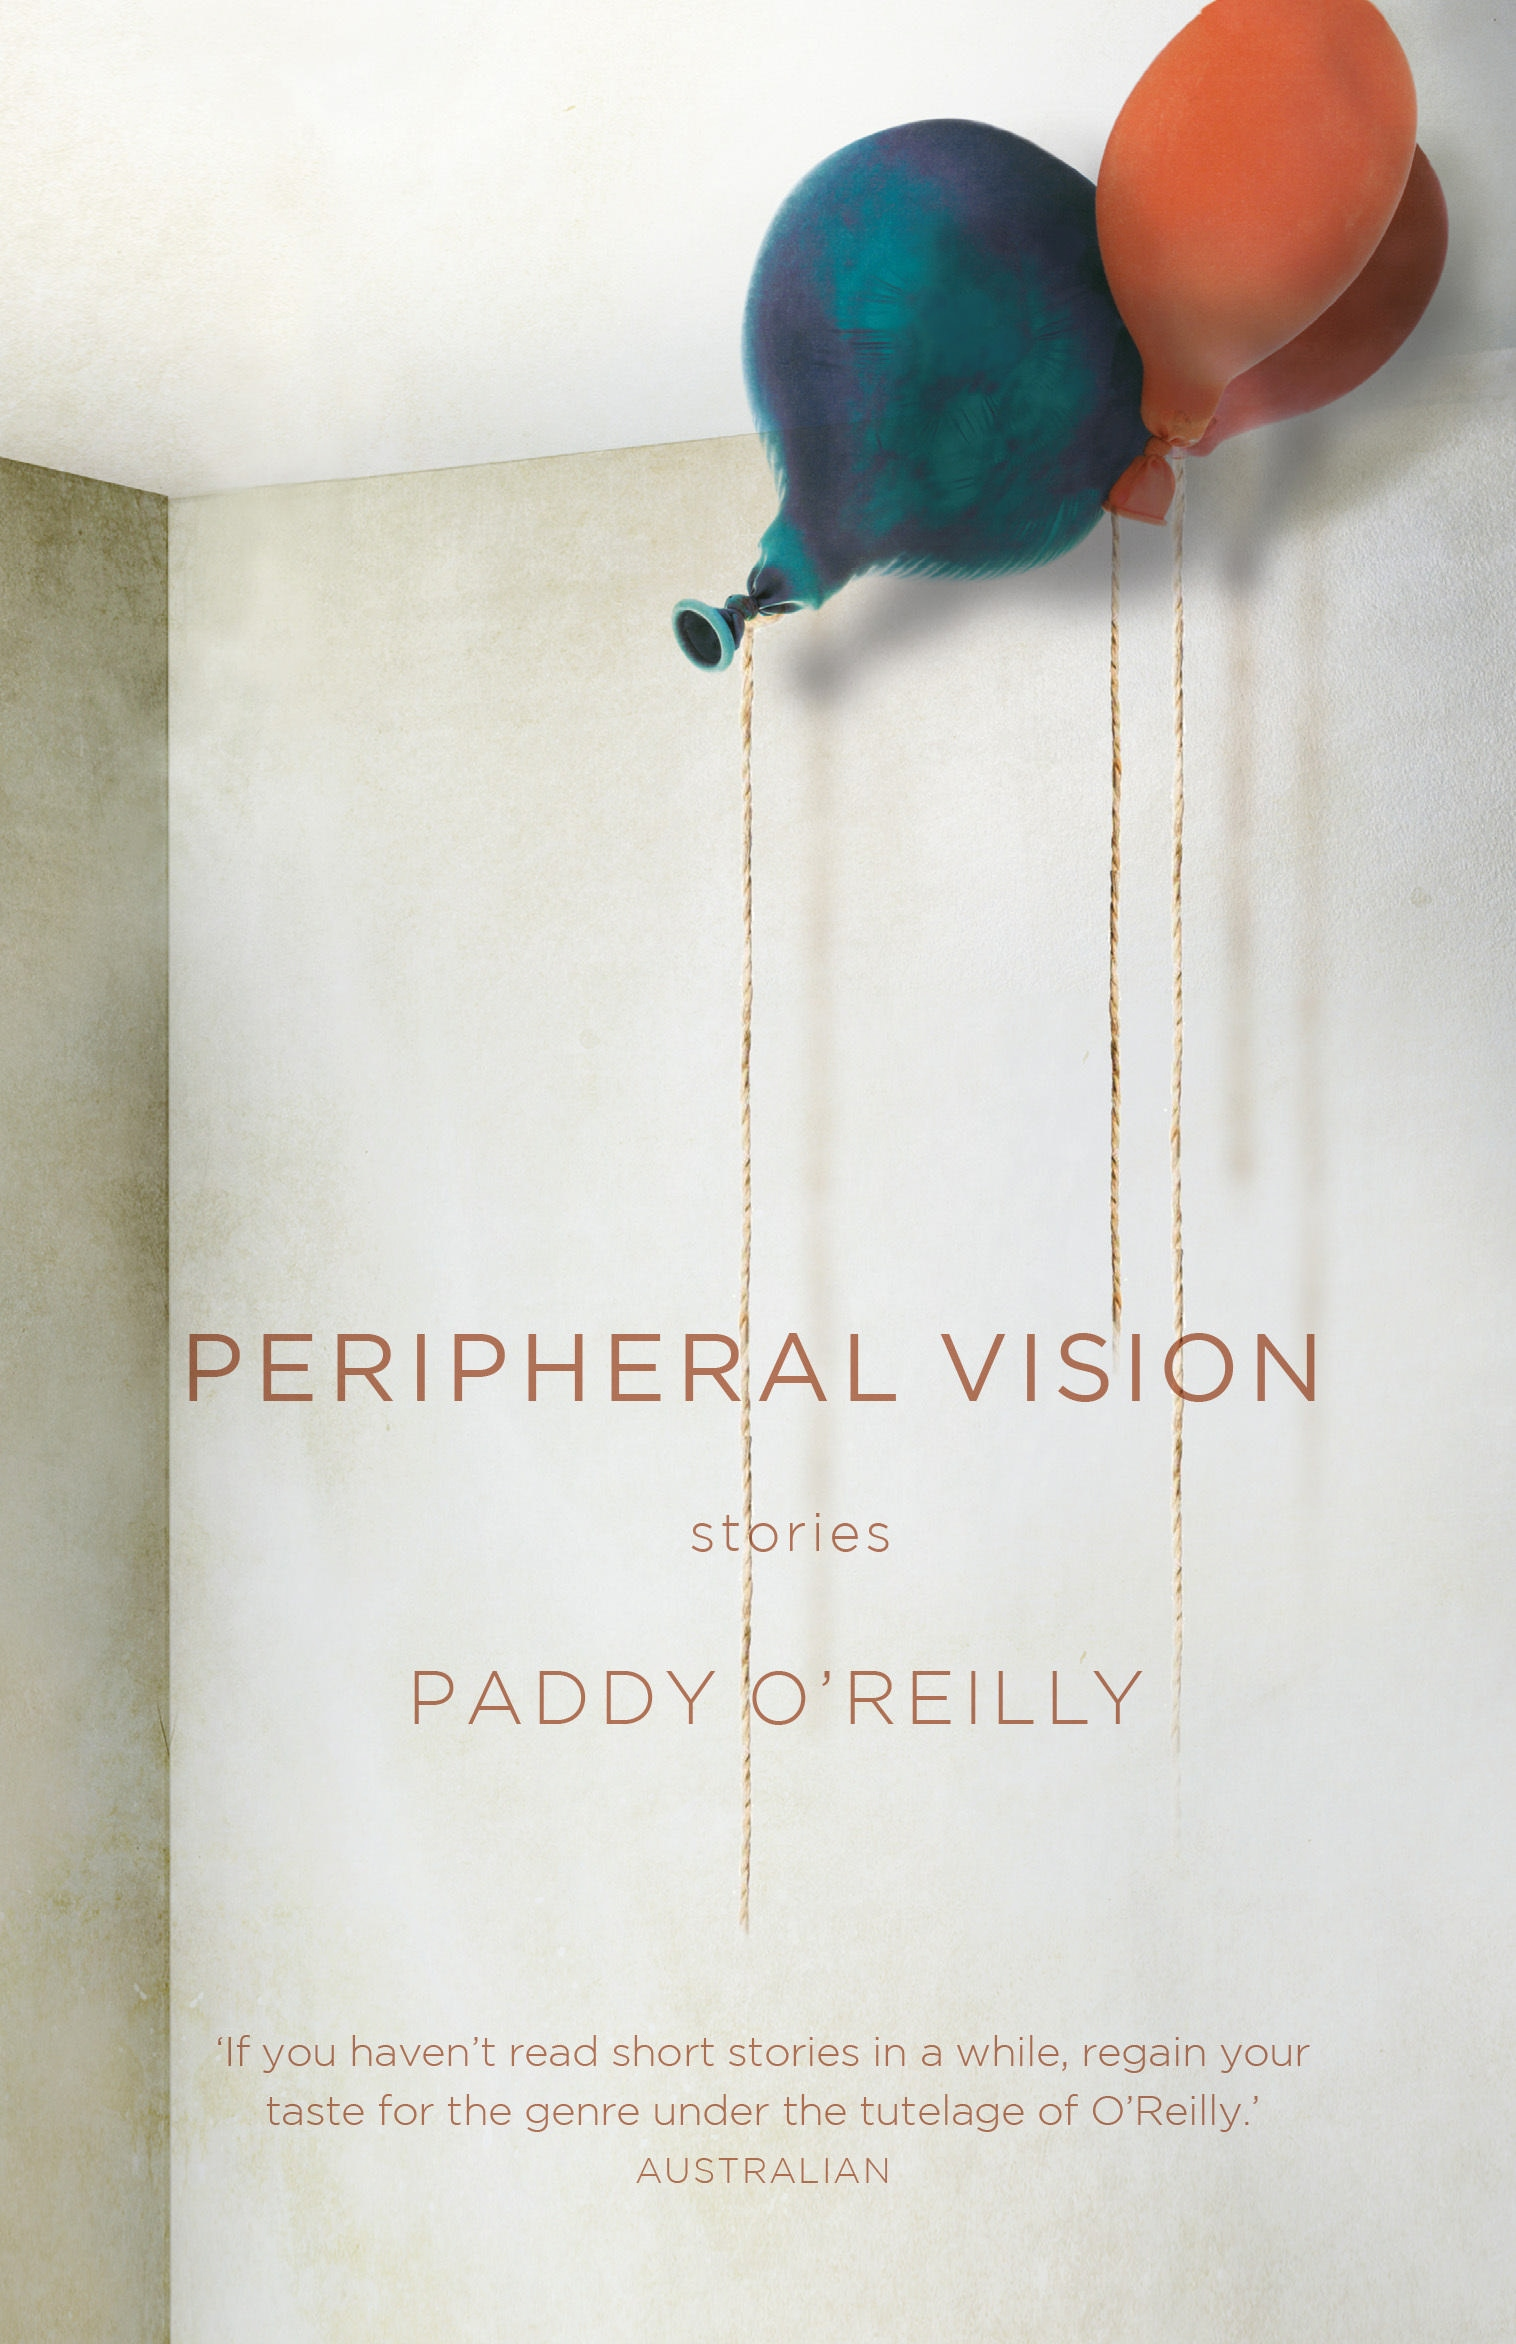 Cover Art for Peripheral Vision, ISBN: 9780702253607